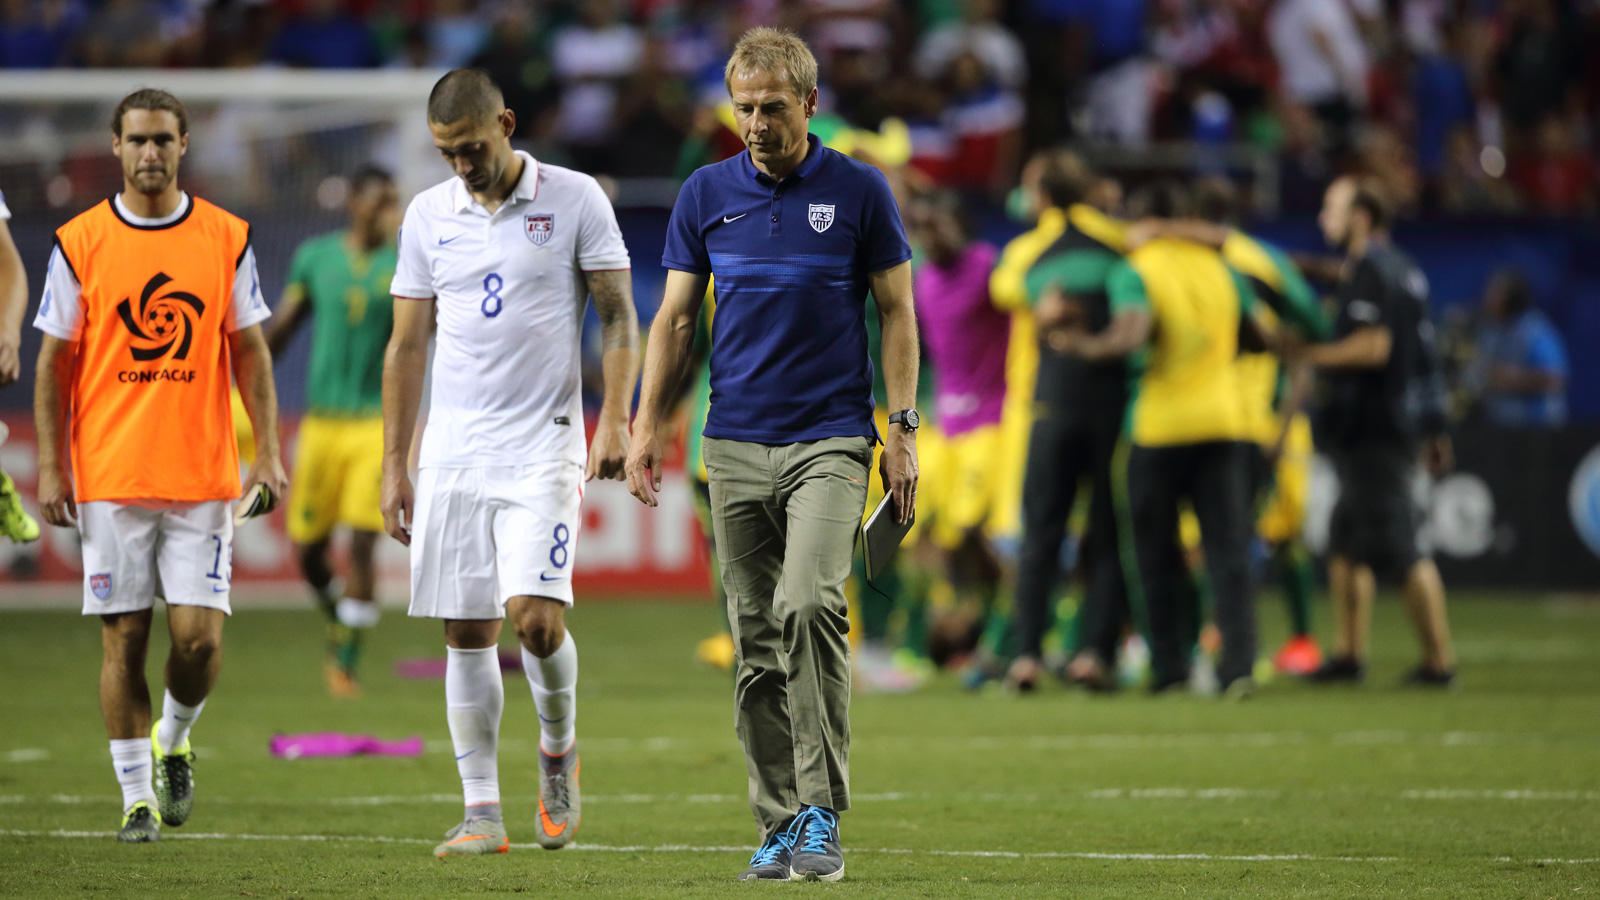 def282b04 A downtrodden Clint Dempsey and Jurgen Klinsmann walk off the field as  Jamaica celebrates a stunning